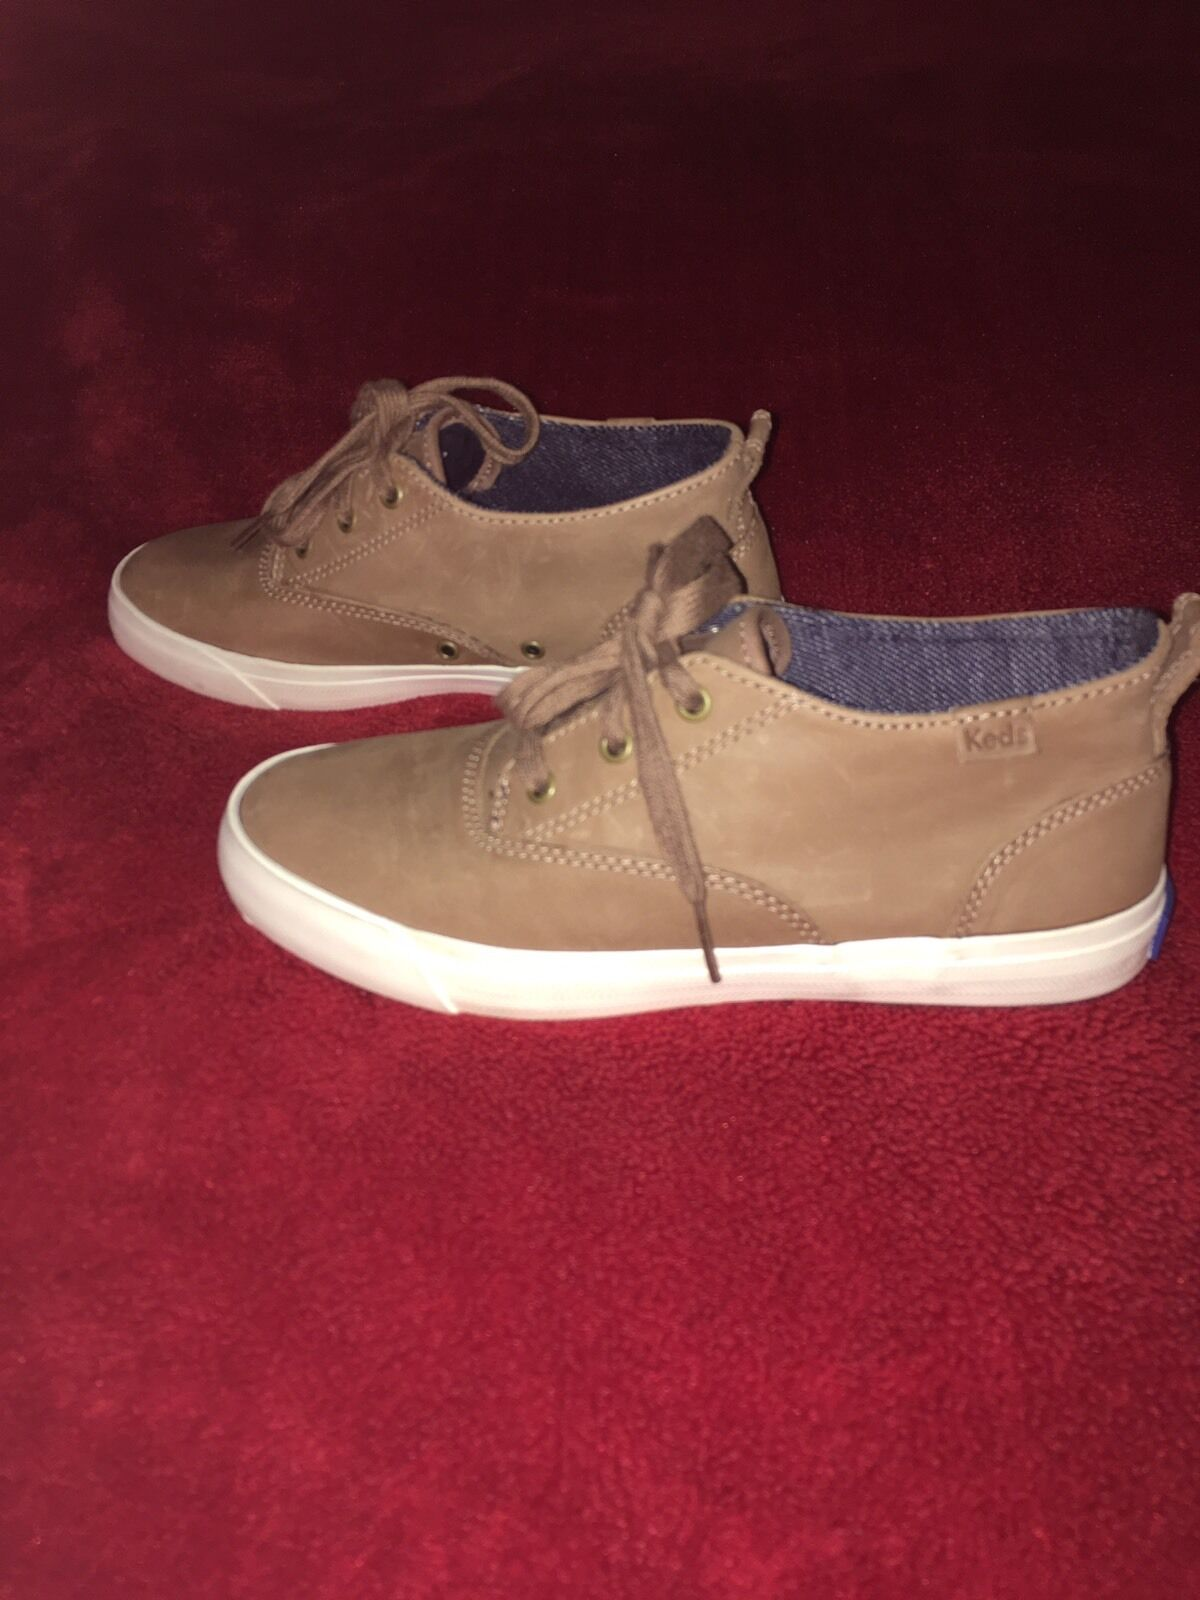 NEW Women's Keds Triumph Mid Leather Lace-Up Trainers In Brown-Size Uk 4   Eu 37